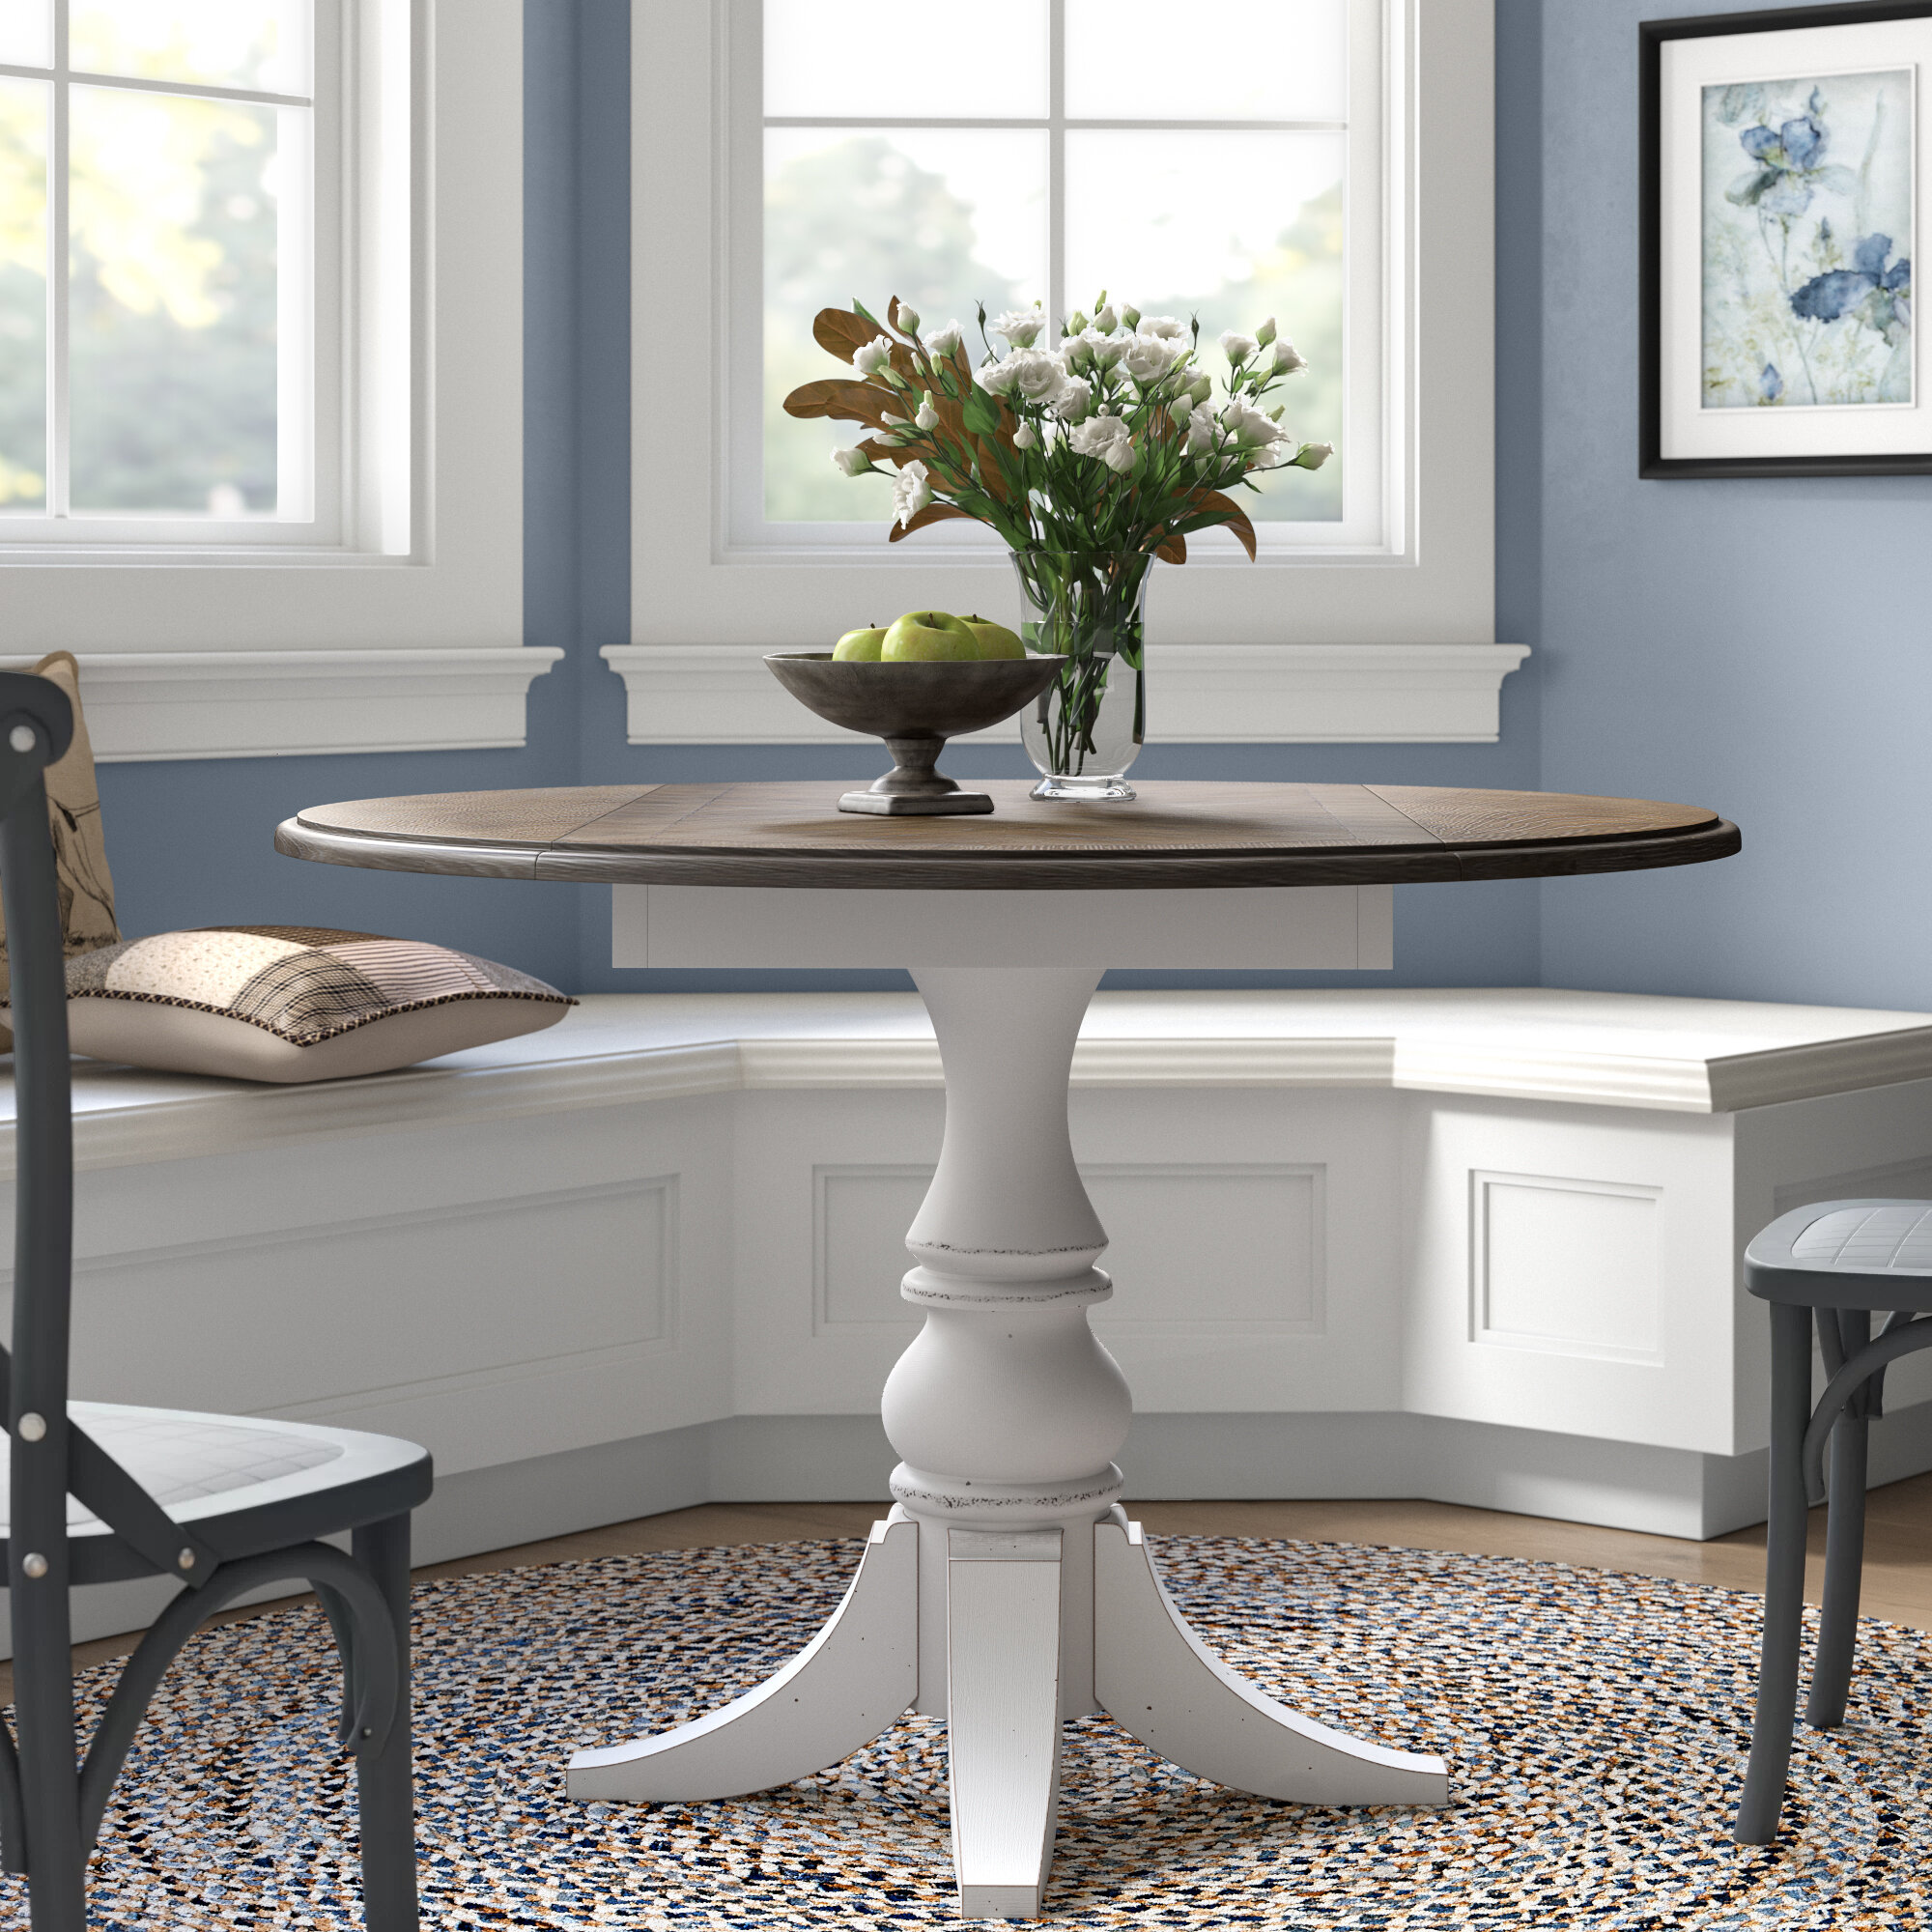 Ophelia Co Tiphaine Drop Leaf Dining Table Reviews Wayfair Ca